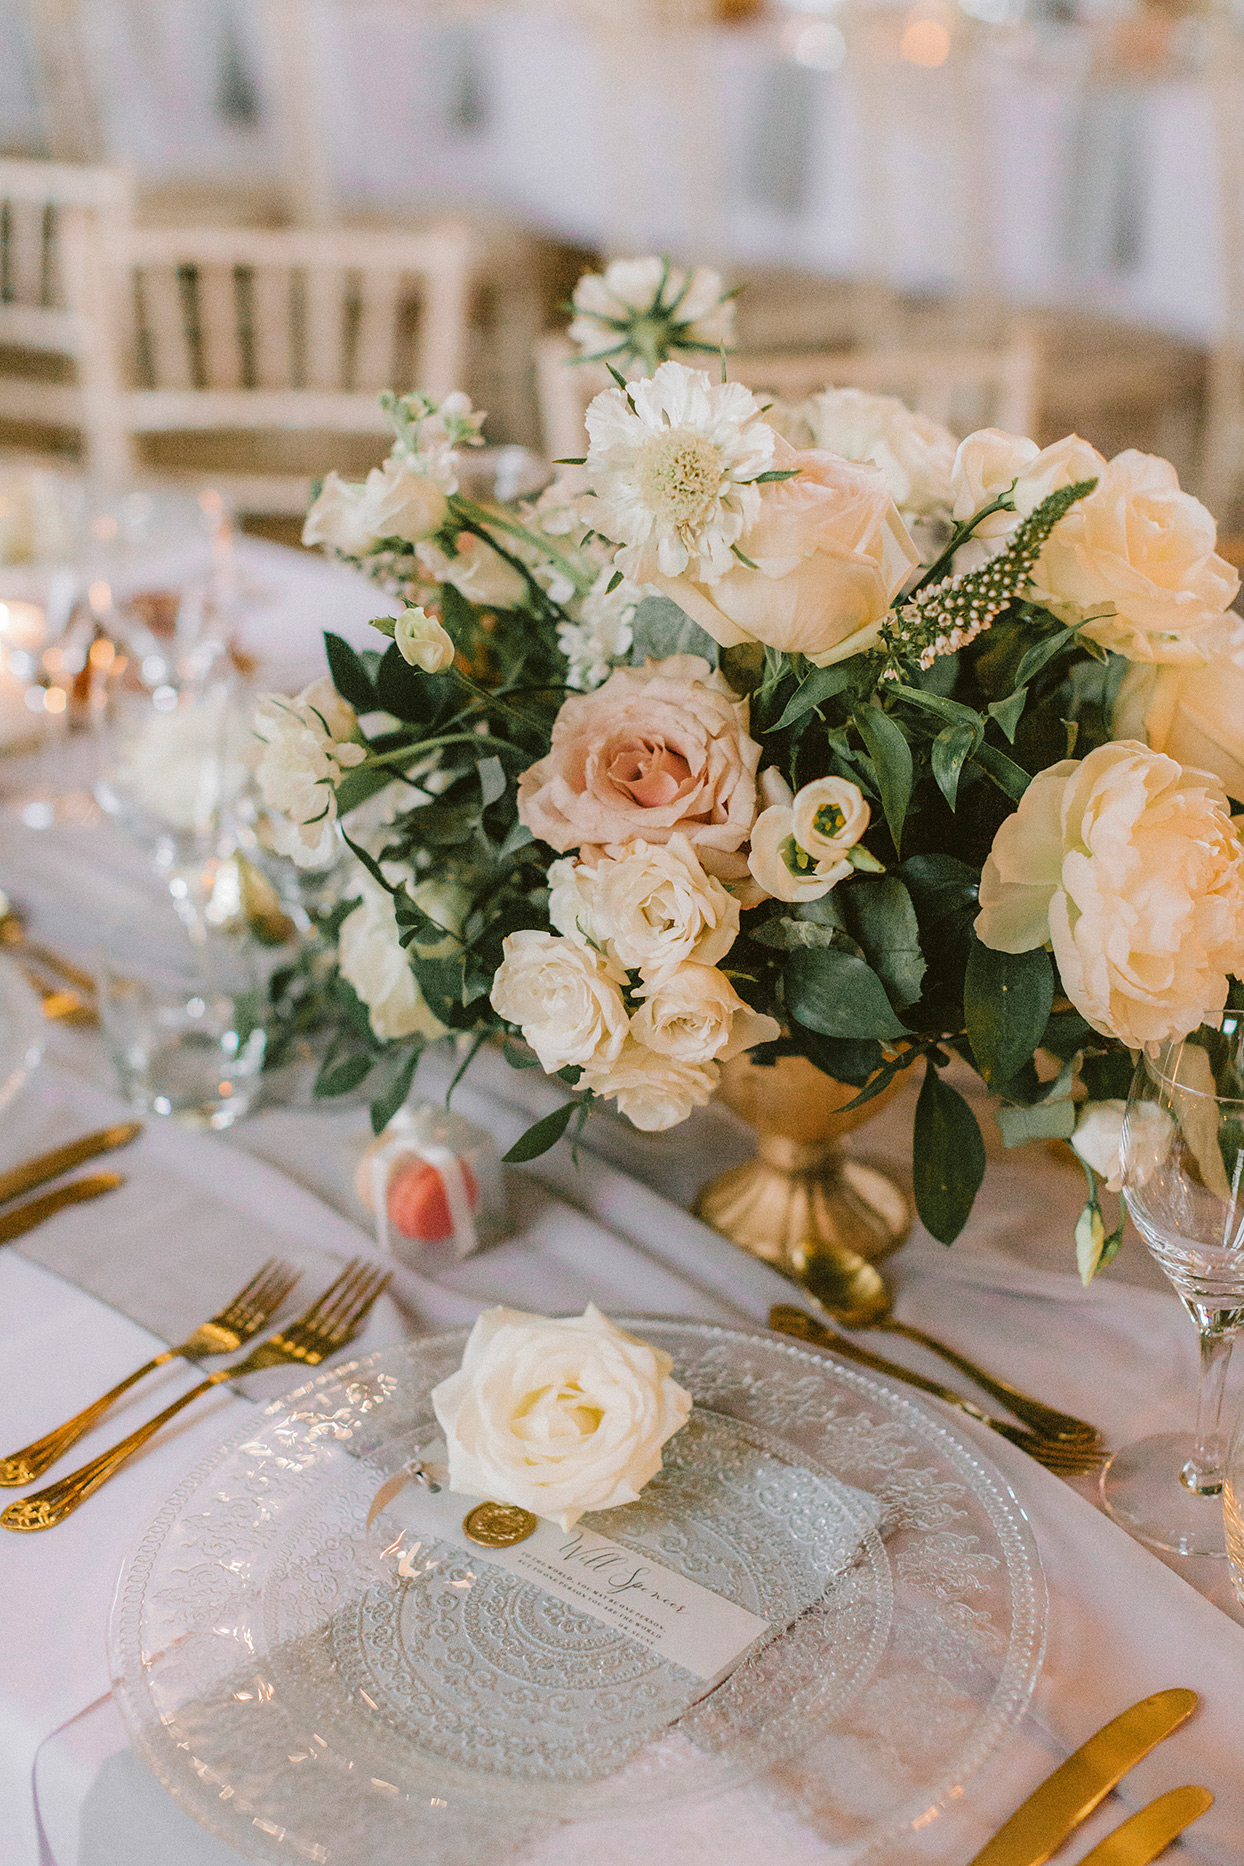 pastel floral centerpiece in gold vase on table